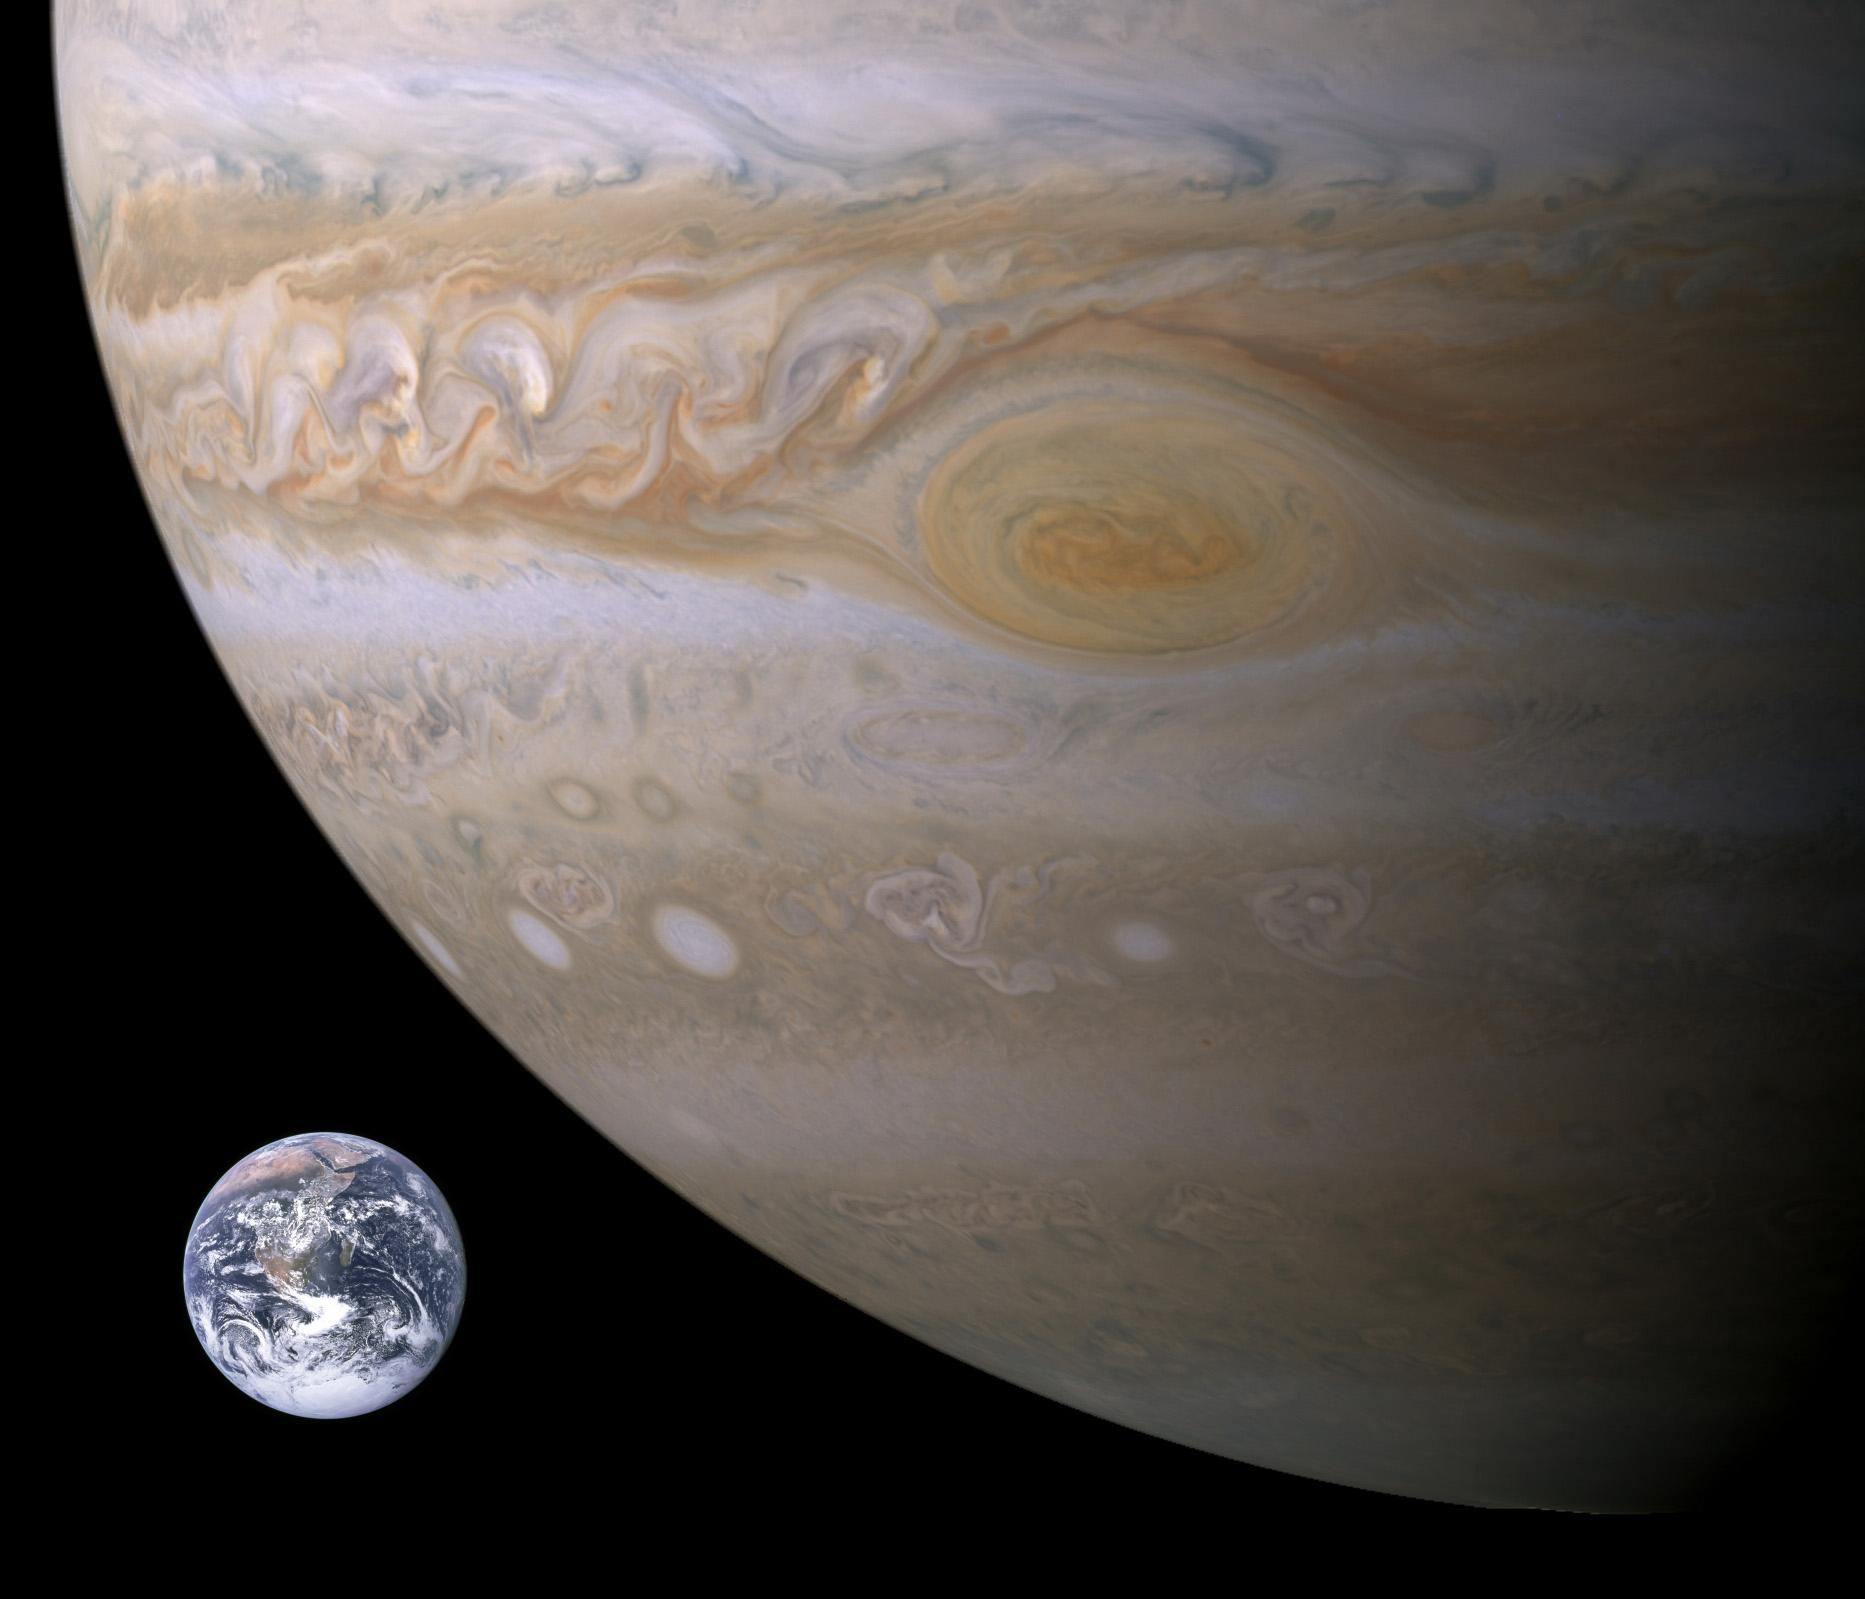 Jupiter Facts For Kids Teach Your Young Kids All About Jupiter With This Interesting Jupiter